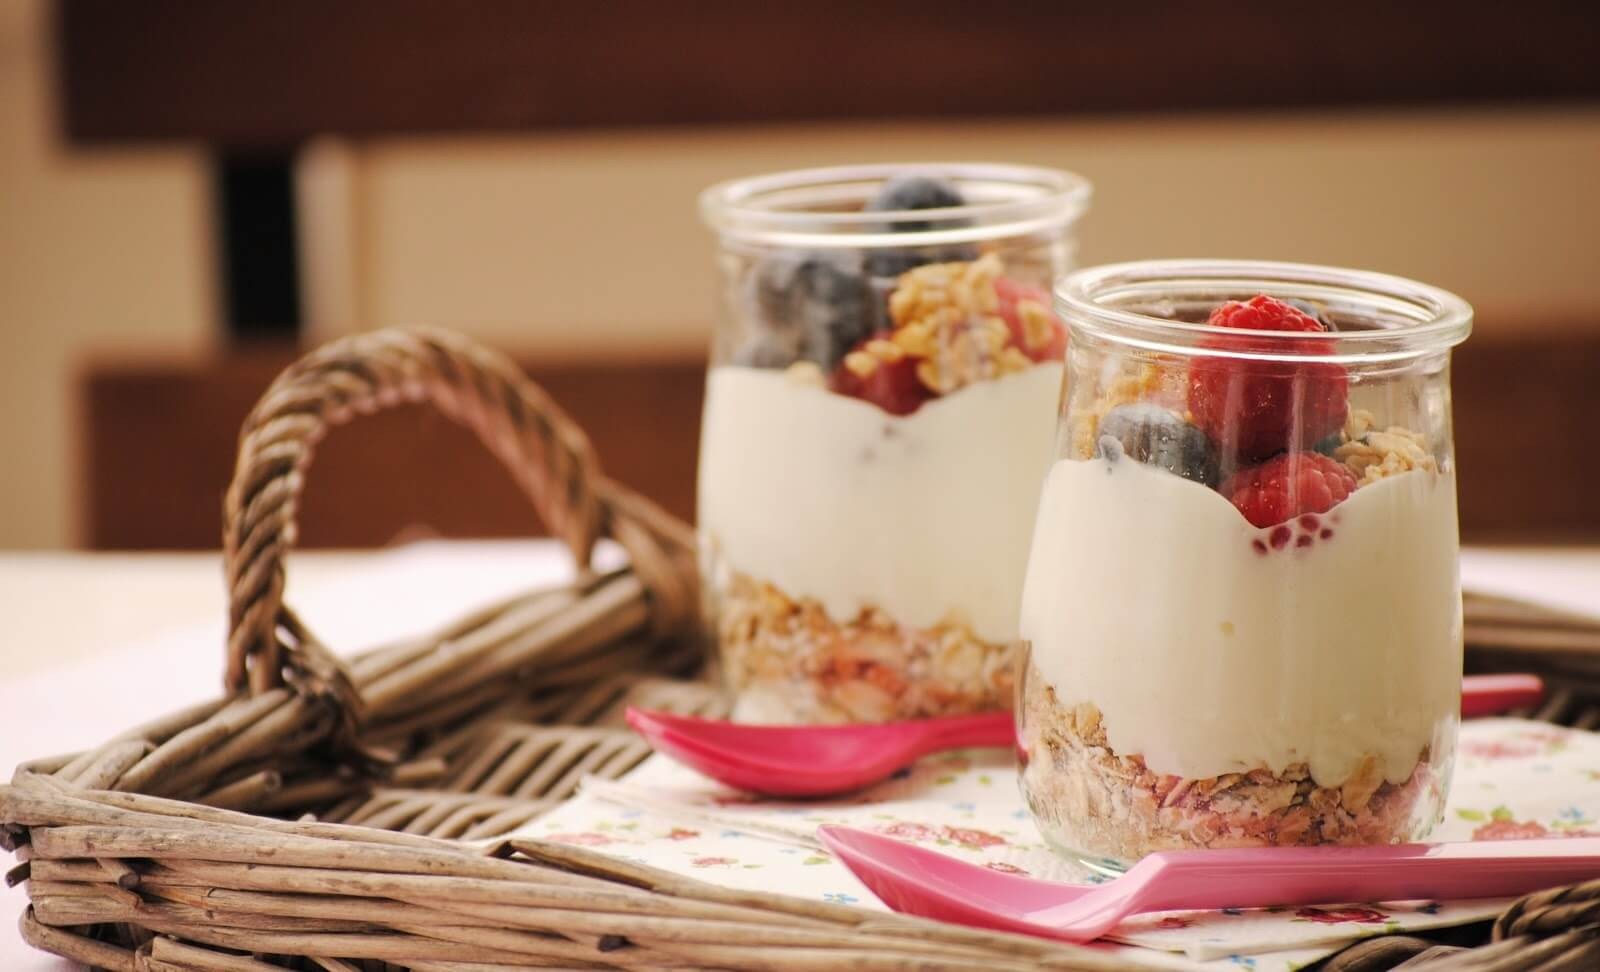 Two yoghurts with fruit and cereals.